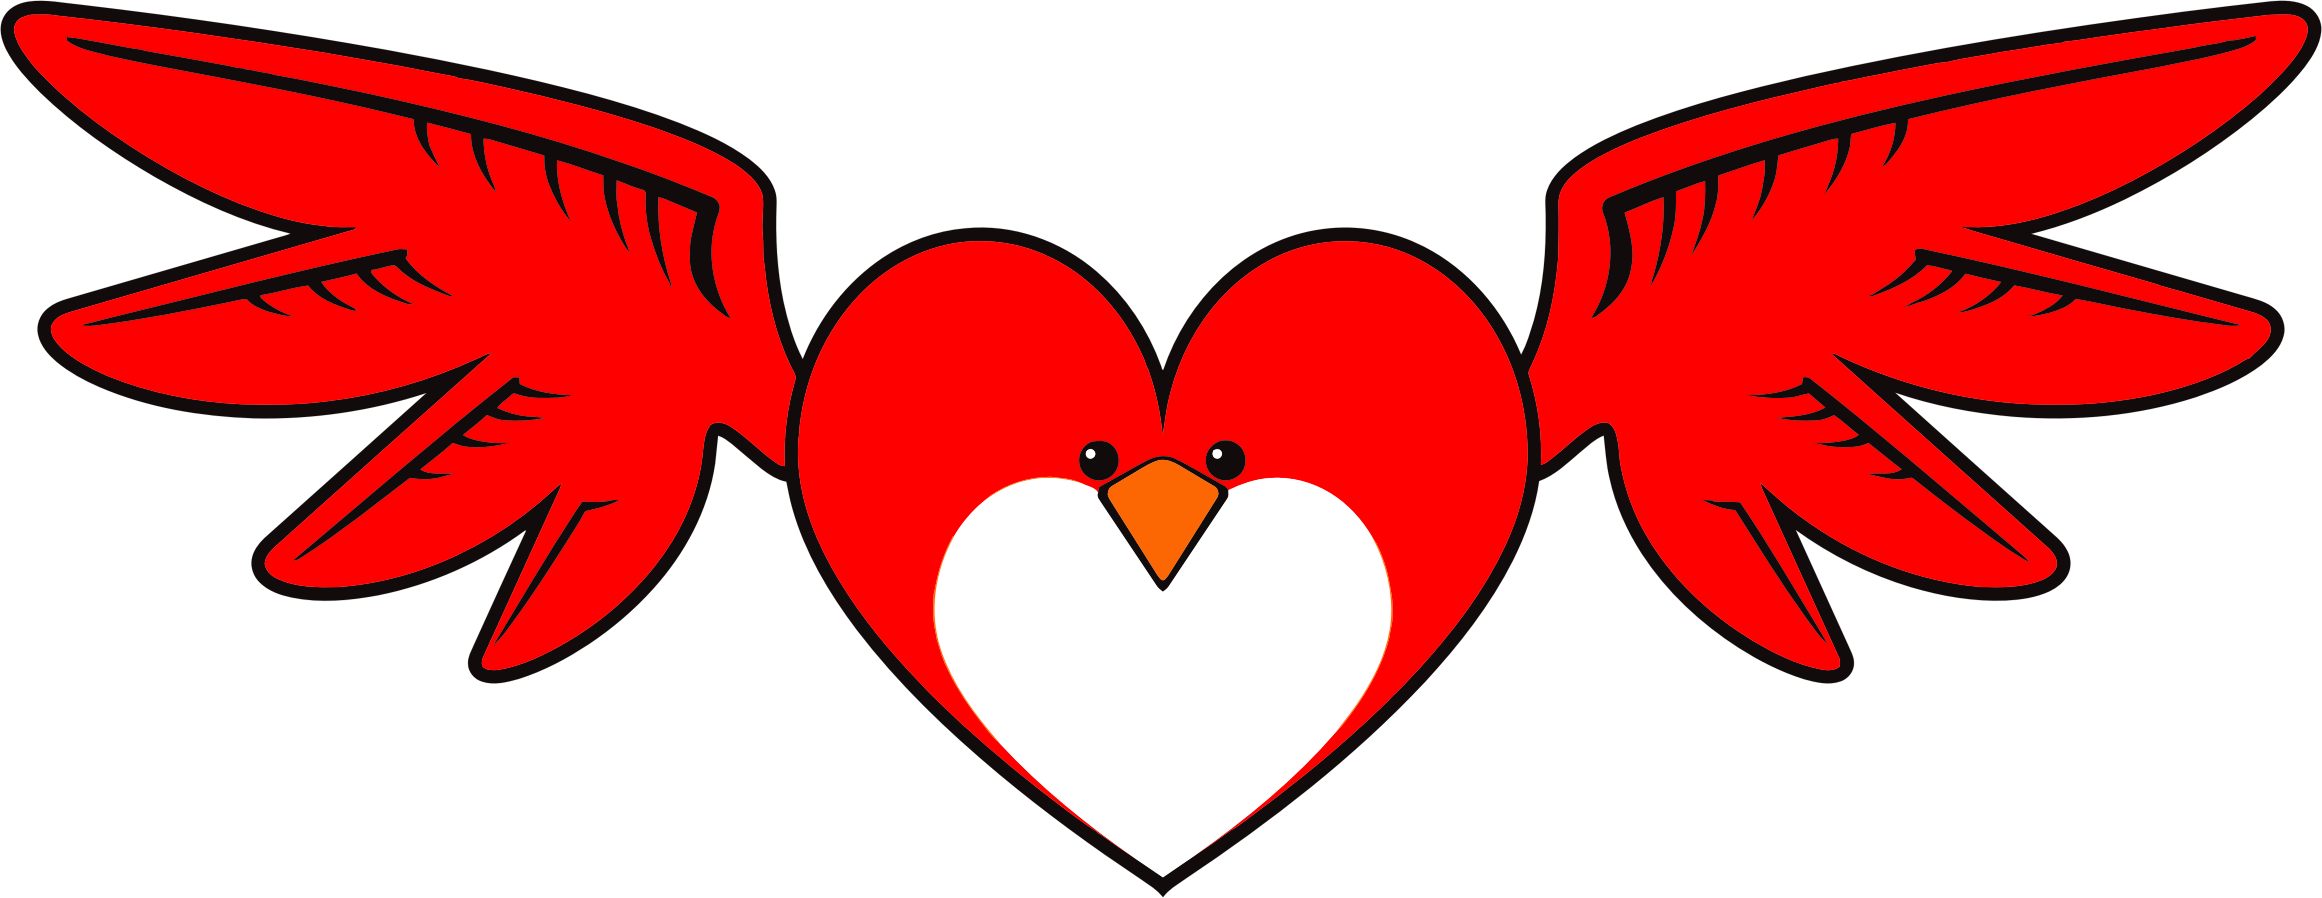 Bird clip art heart. Icons png free and